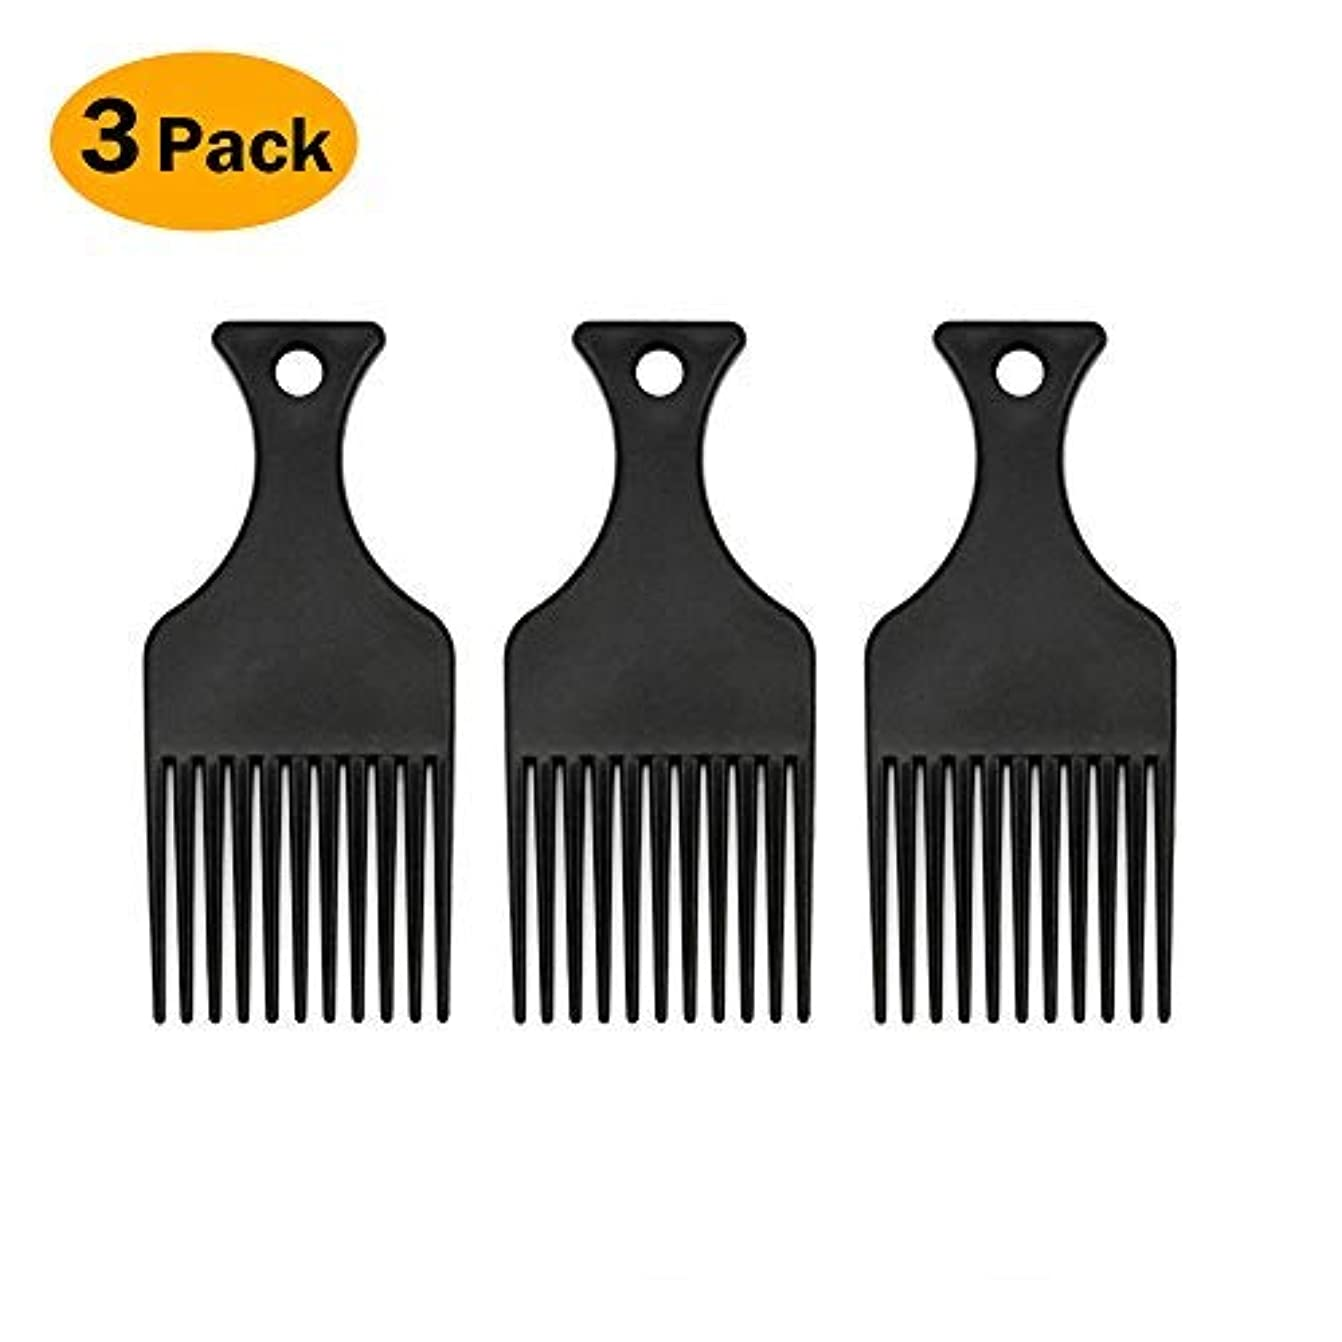 Bewave Plastic Afro Pik Lift Hair Comb Detangle Wig Braid Black Man Styling Tool (3Pcs) (Small) [並行輸入品]